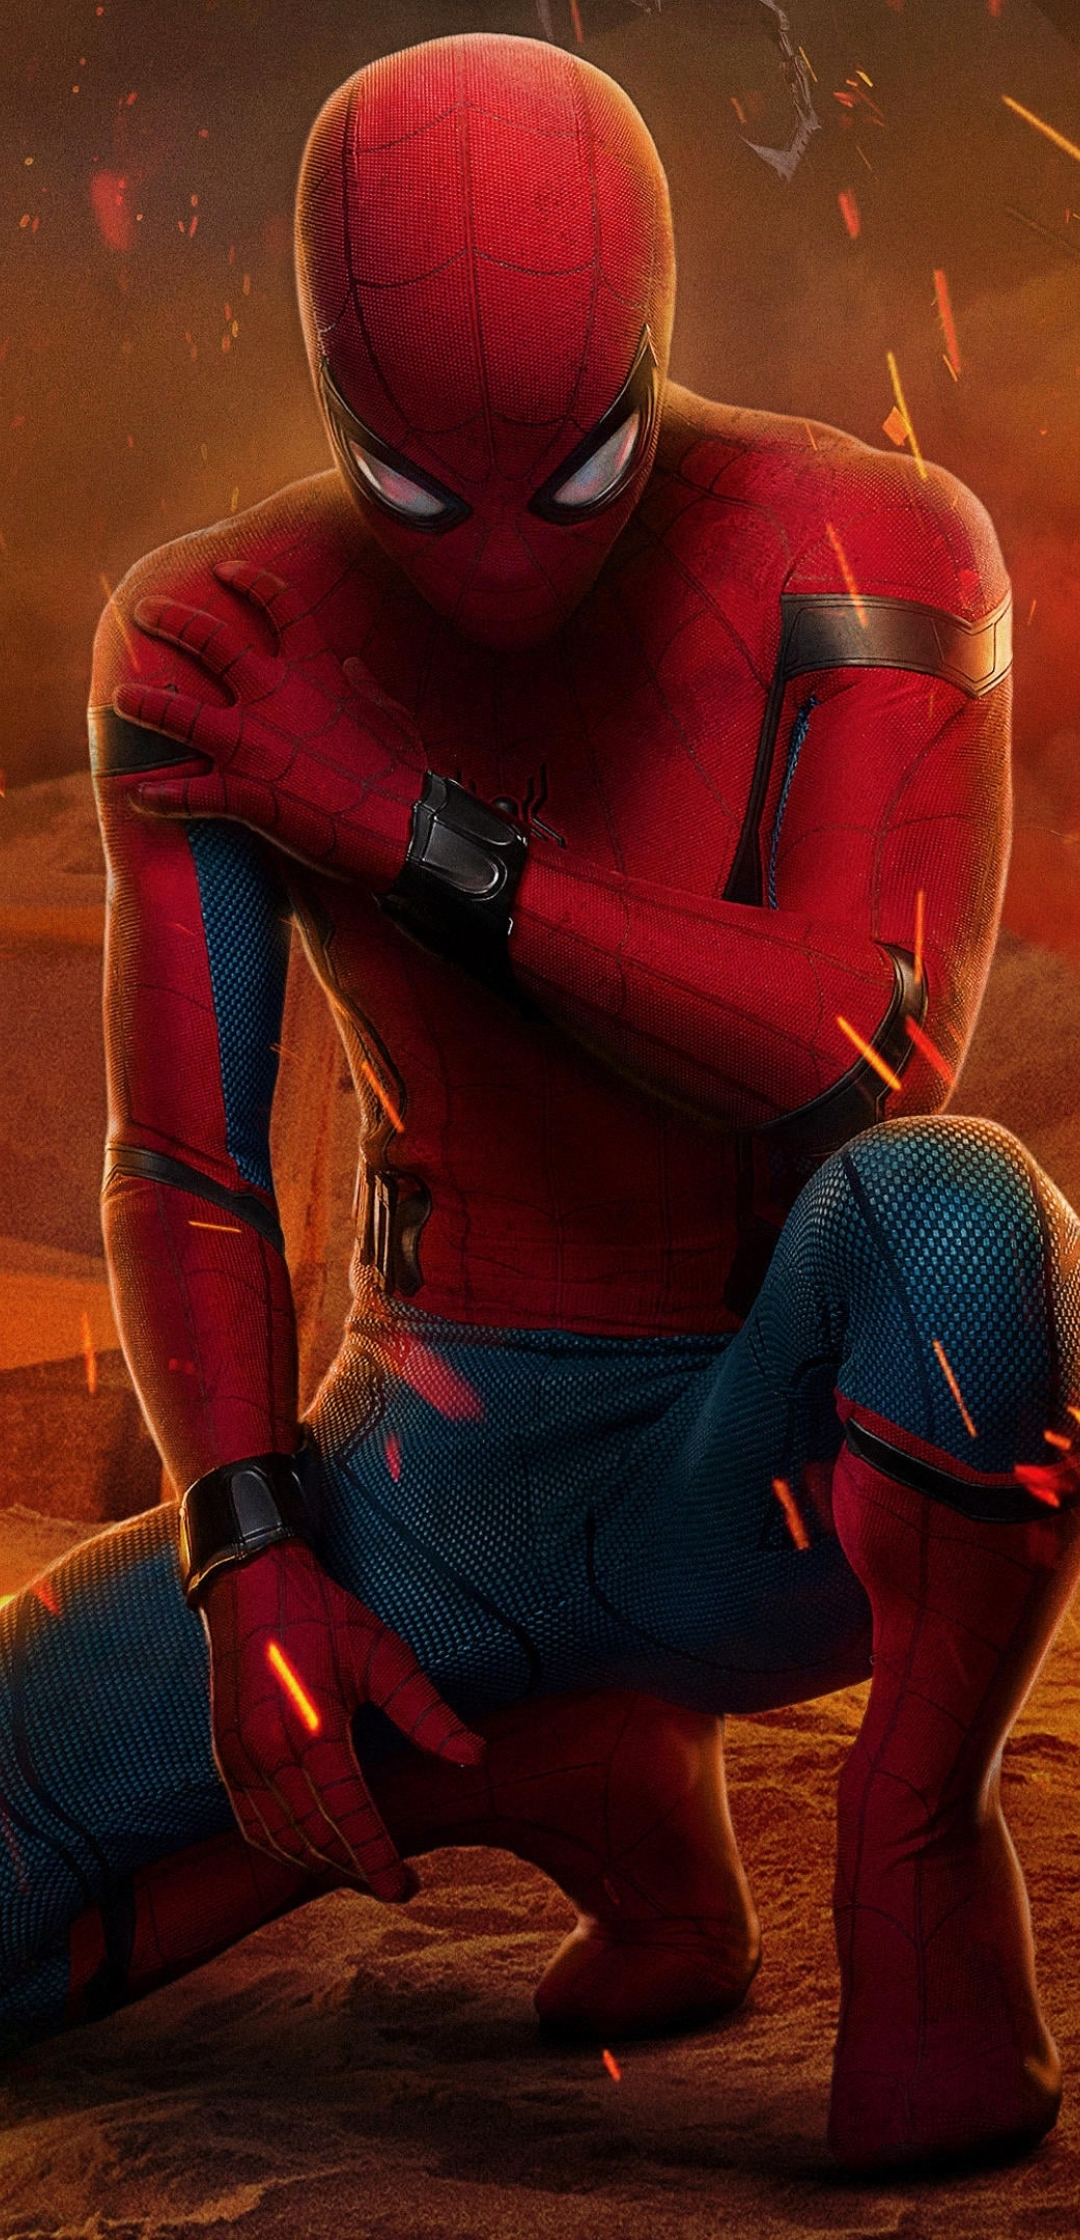 1080x2240 Peter Parker Spider-Man Homecoming 1080x2240 ...